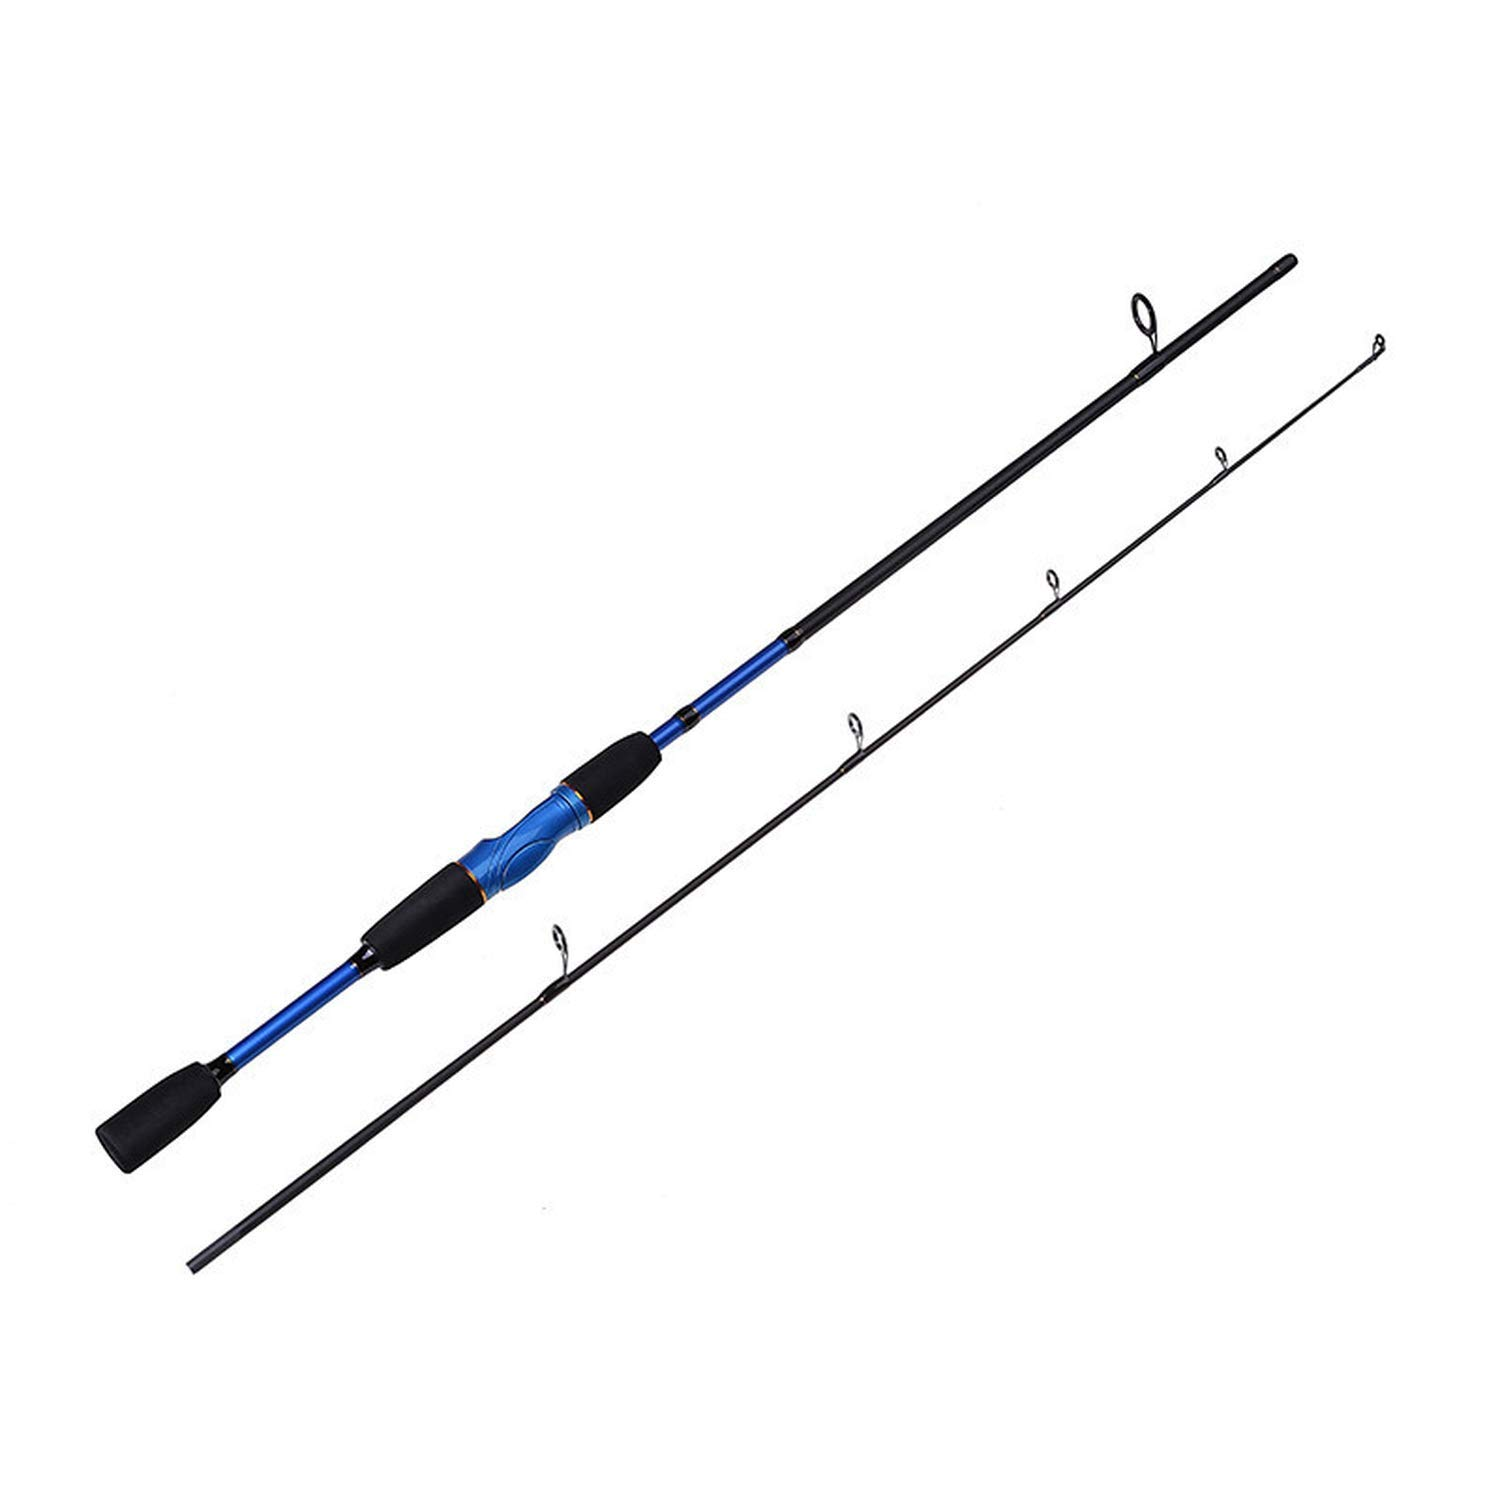 TTFRD Tshirt 2018 New 1.8M Baitcasting Rod and Spinning Fishing Pole 100% Carbon Spinning Lure Fishing Rod M Power 4-12Lb 4-22G Lure Weight